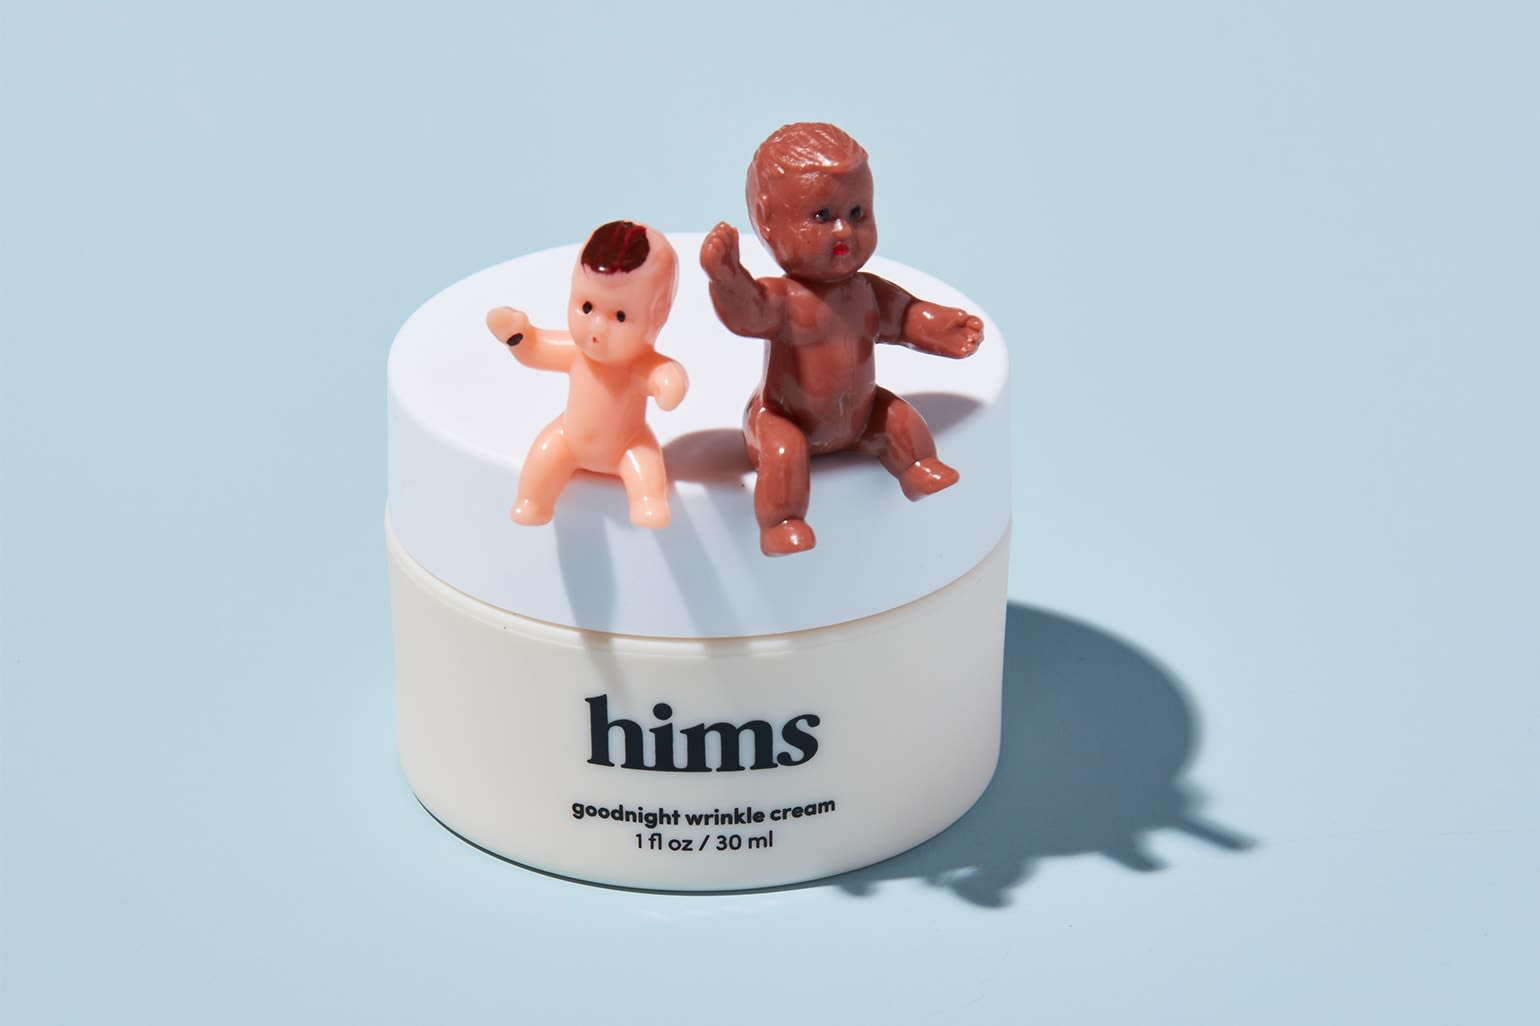 Two baby figurines sitting on top of a container of Hims goodnight wrinkle cream